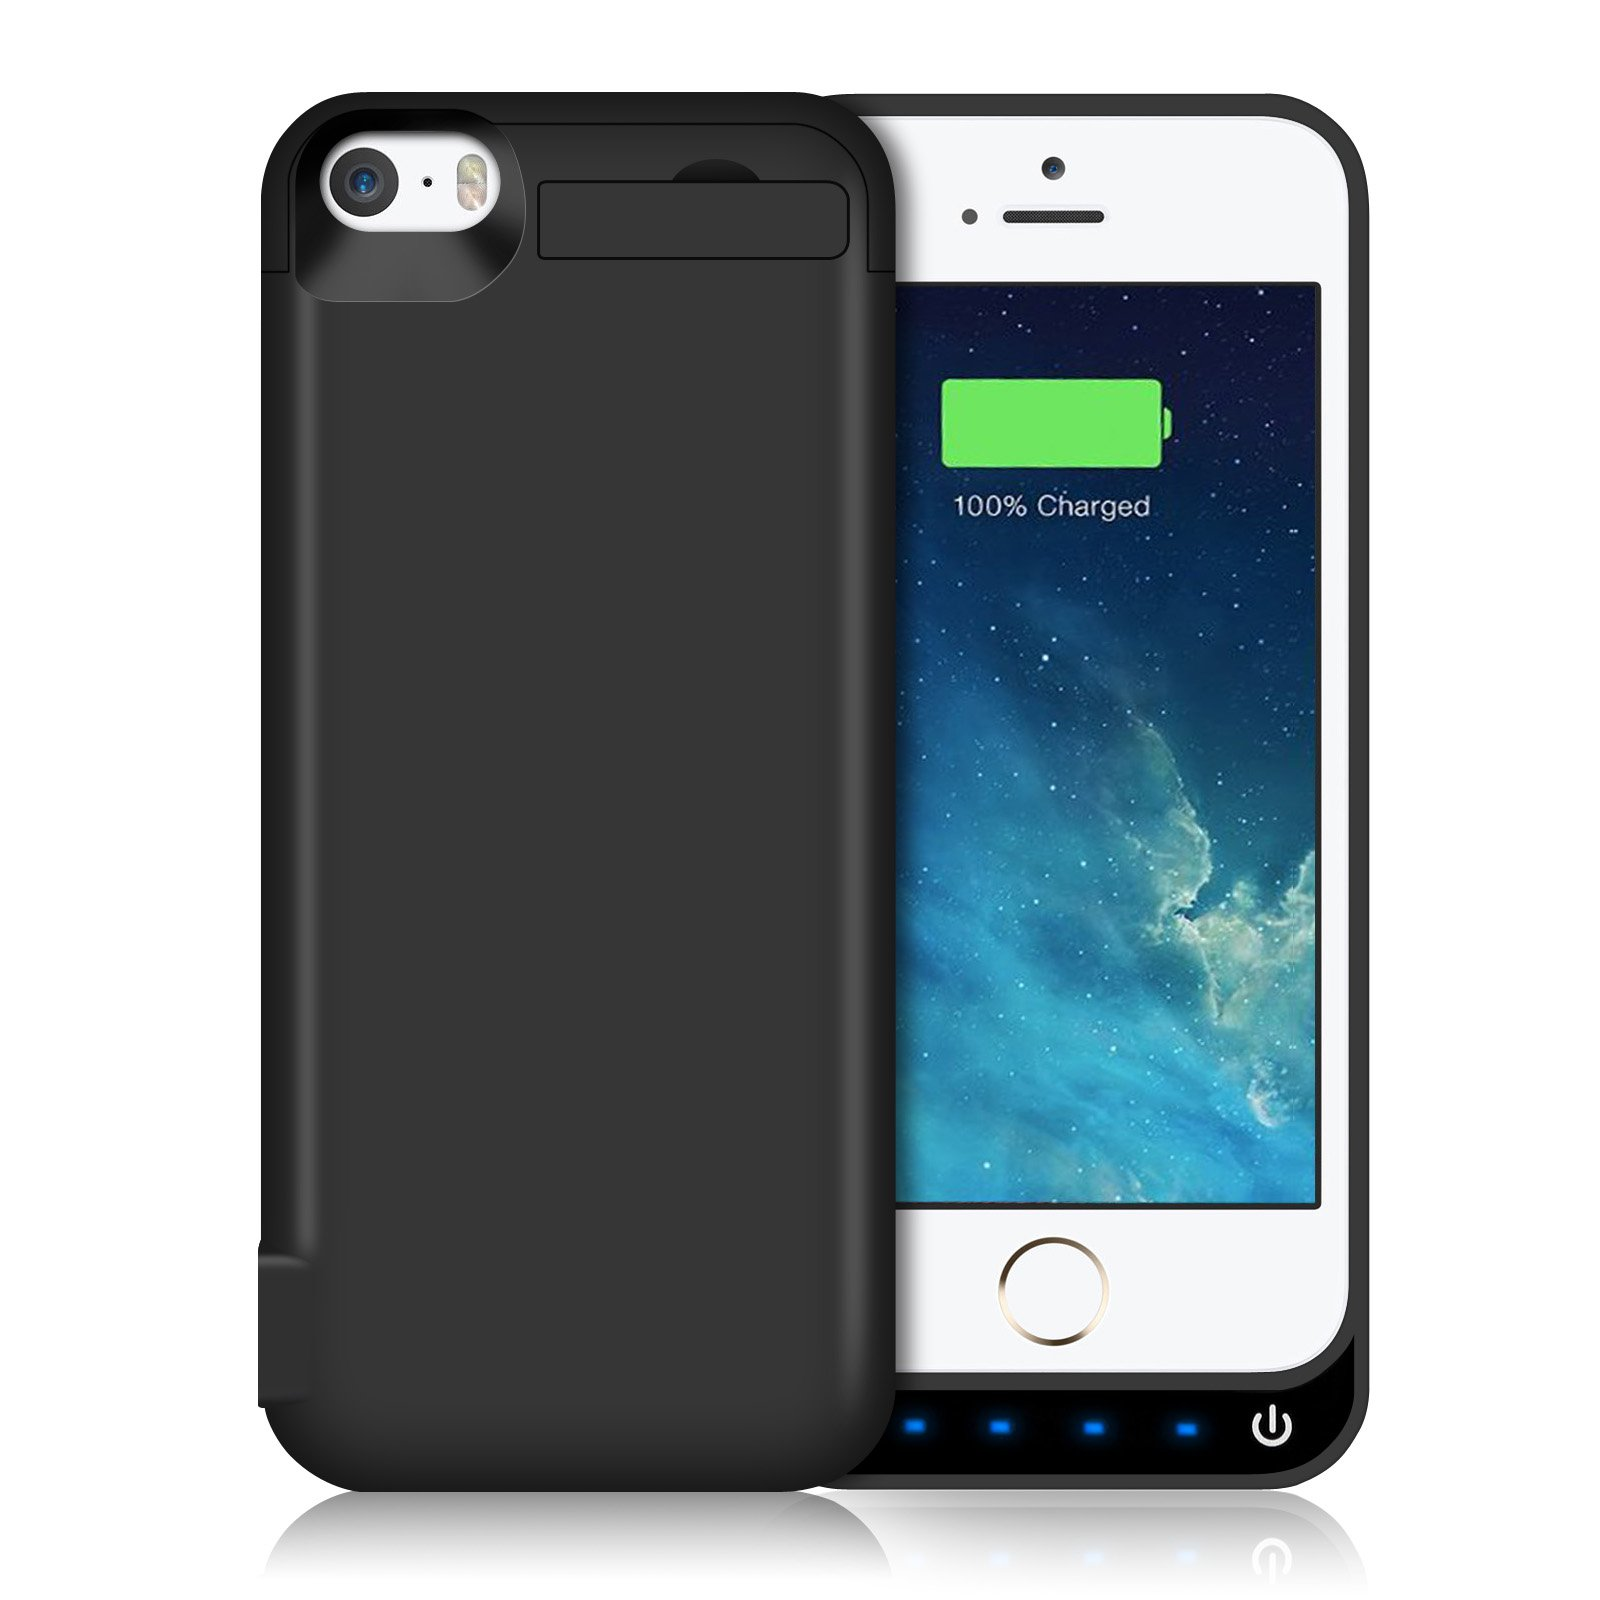 iPhone 5S/5SE/5C/5 Battery Case HETP Backup Charger Case Protection Cover 4600mAh Extended Battery Built in USB Power Bank & Pop-out Kickstand Charging Case(Up to 2.65X Extra Battery Life) Black